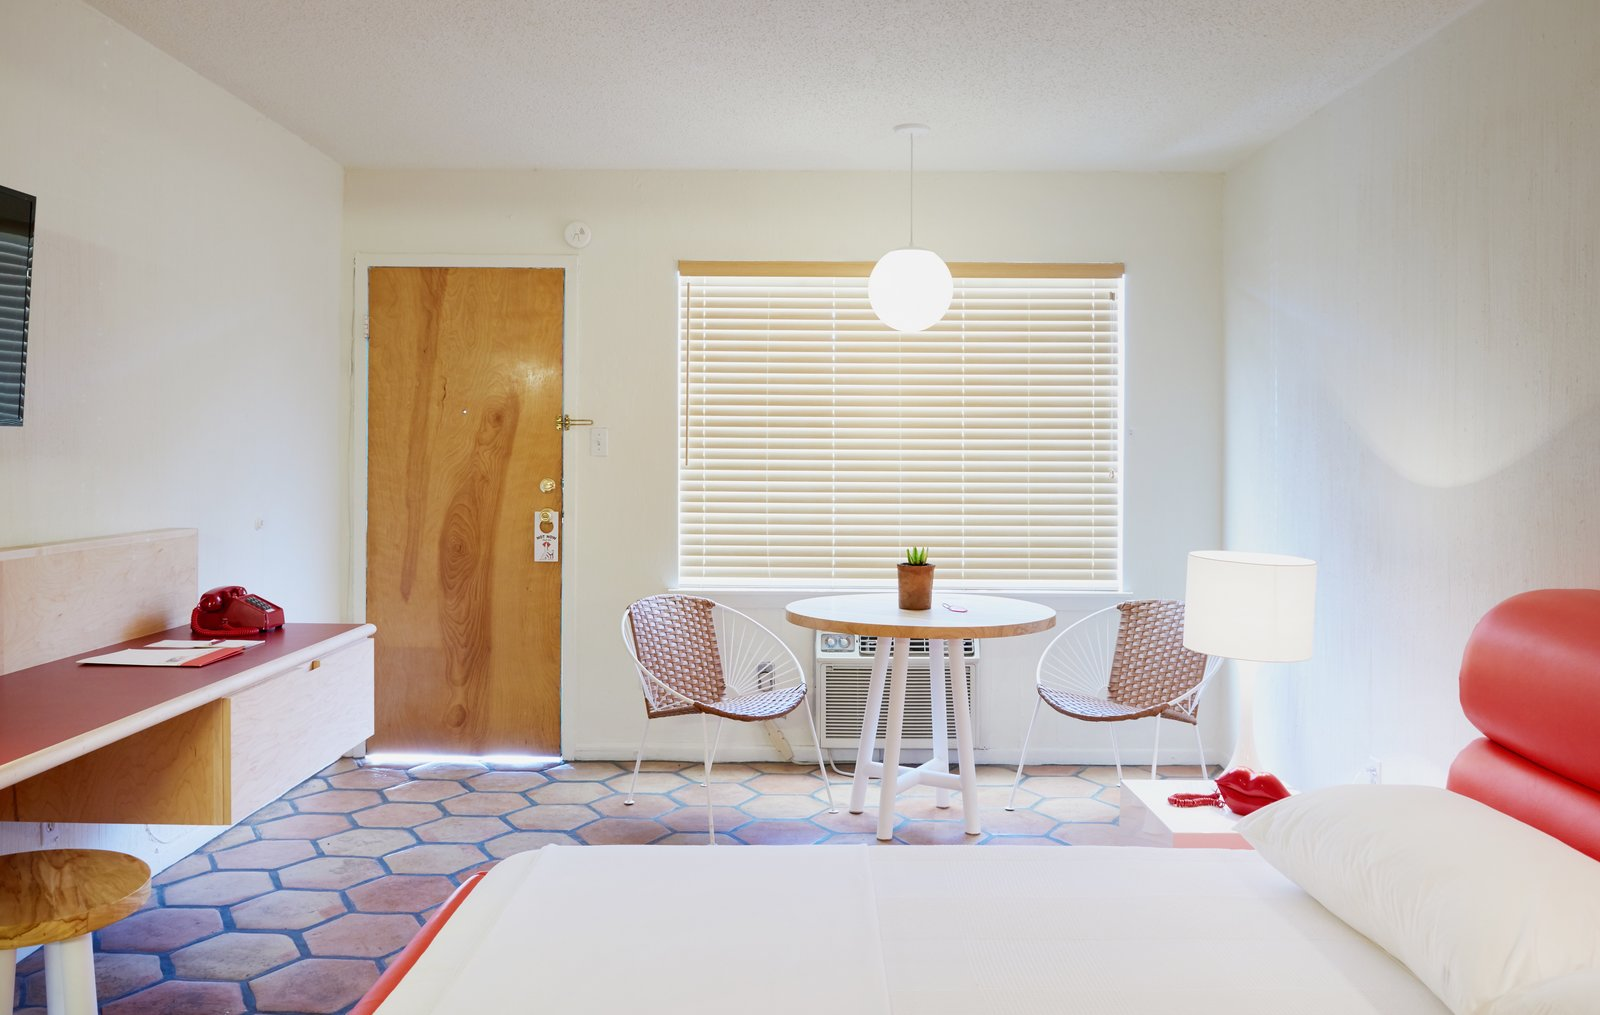 The Rejuvenated Austin Motel Welcomes Guests With Upbeat, Midcentury-Modern Vibes - Photo 6 of 13